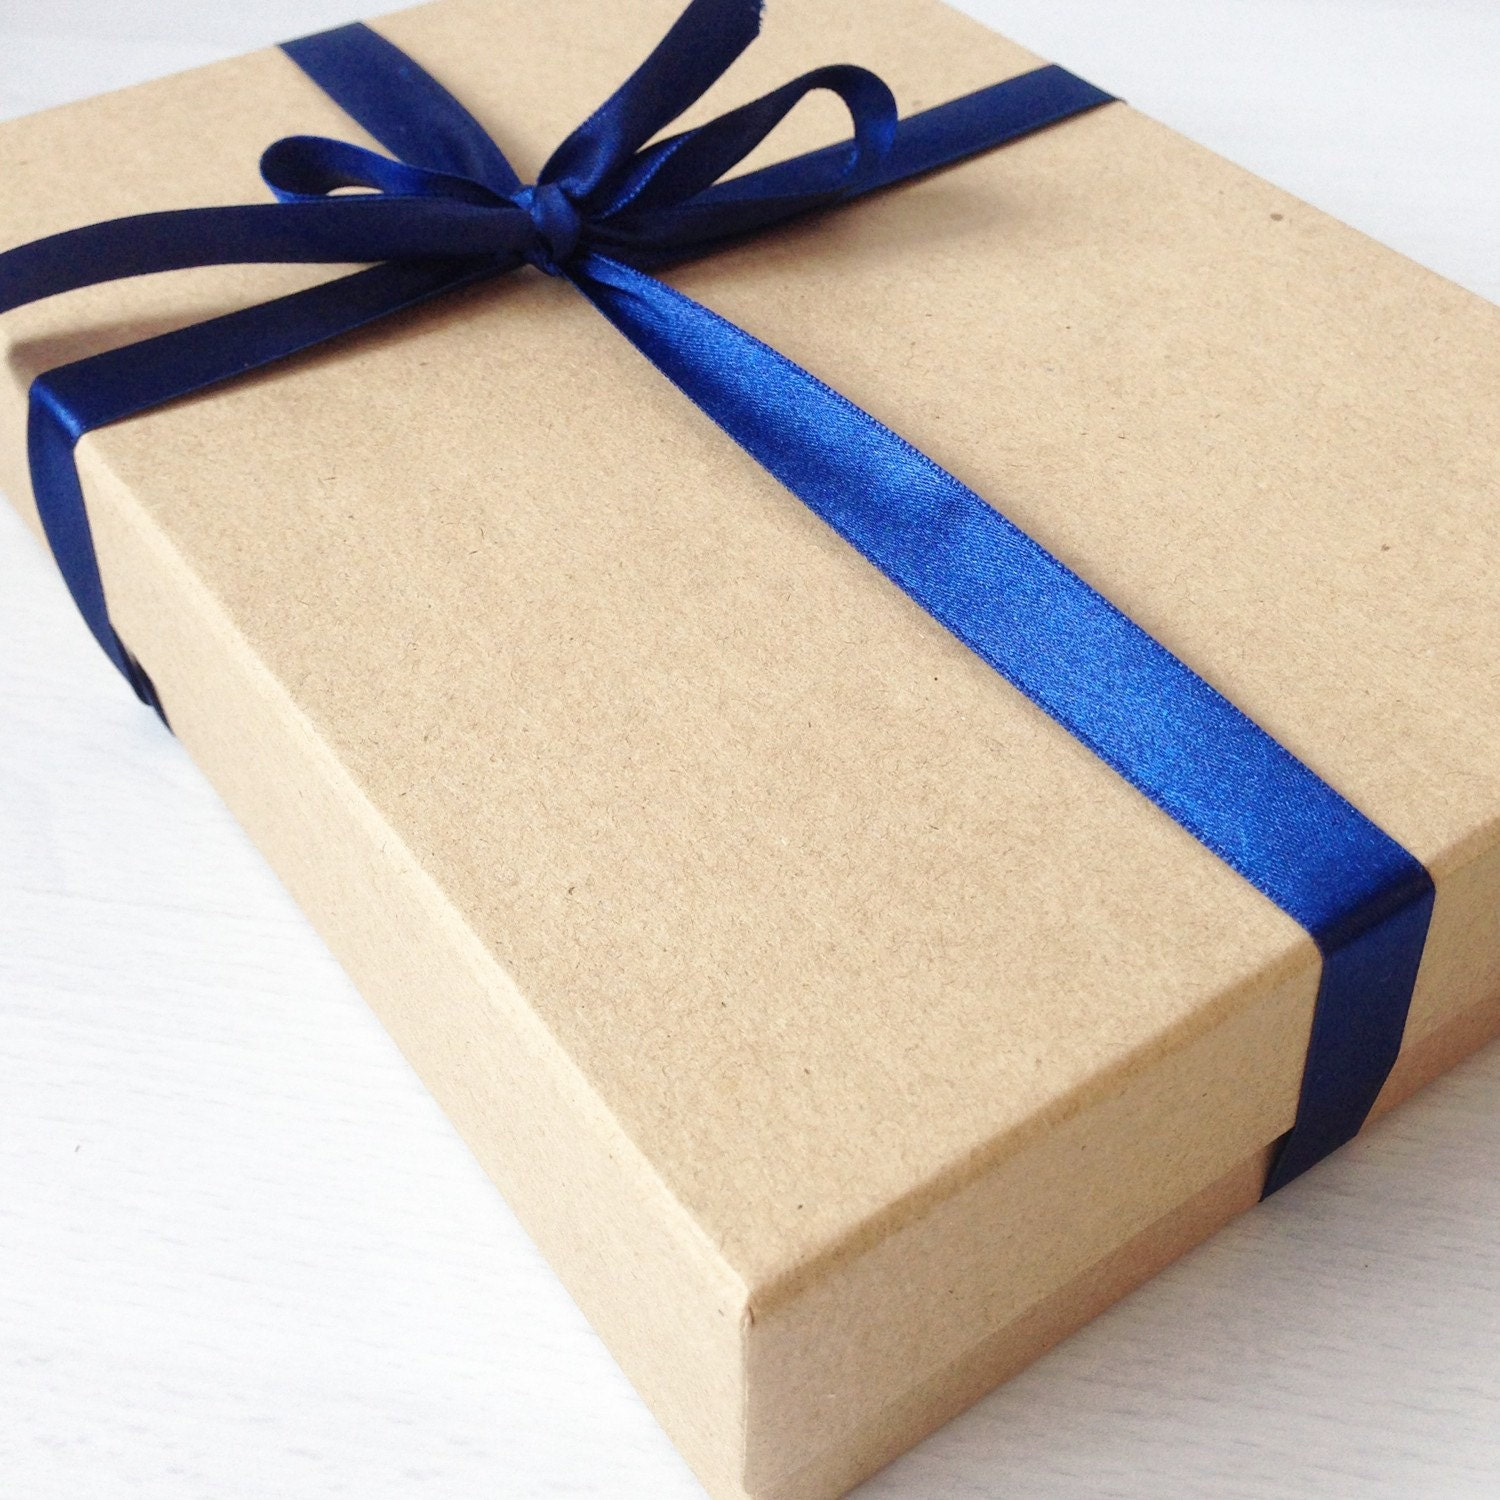 Wedding Gift Box Wrapping : ... gift box, gift box add on, wedding gift box, gift wrapping from